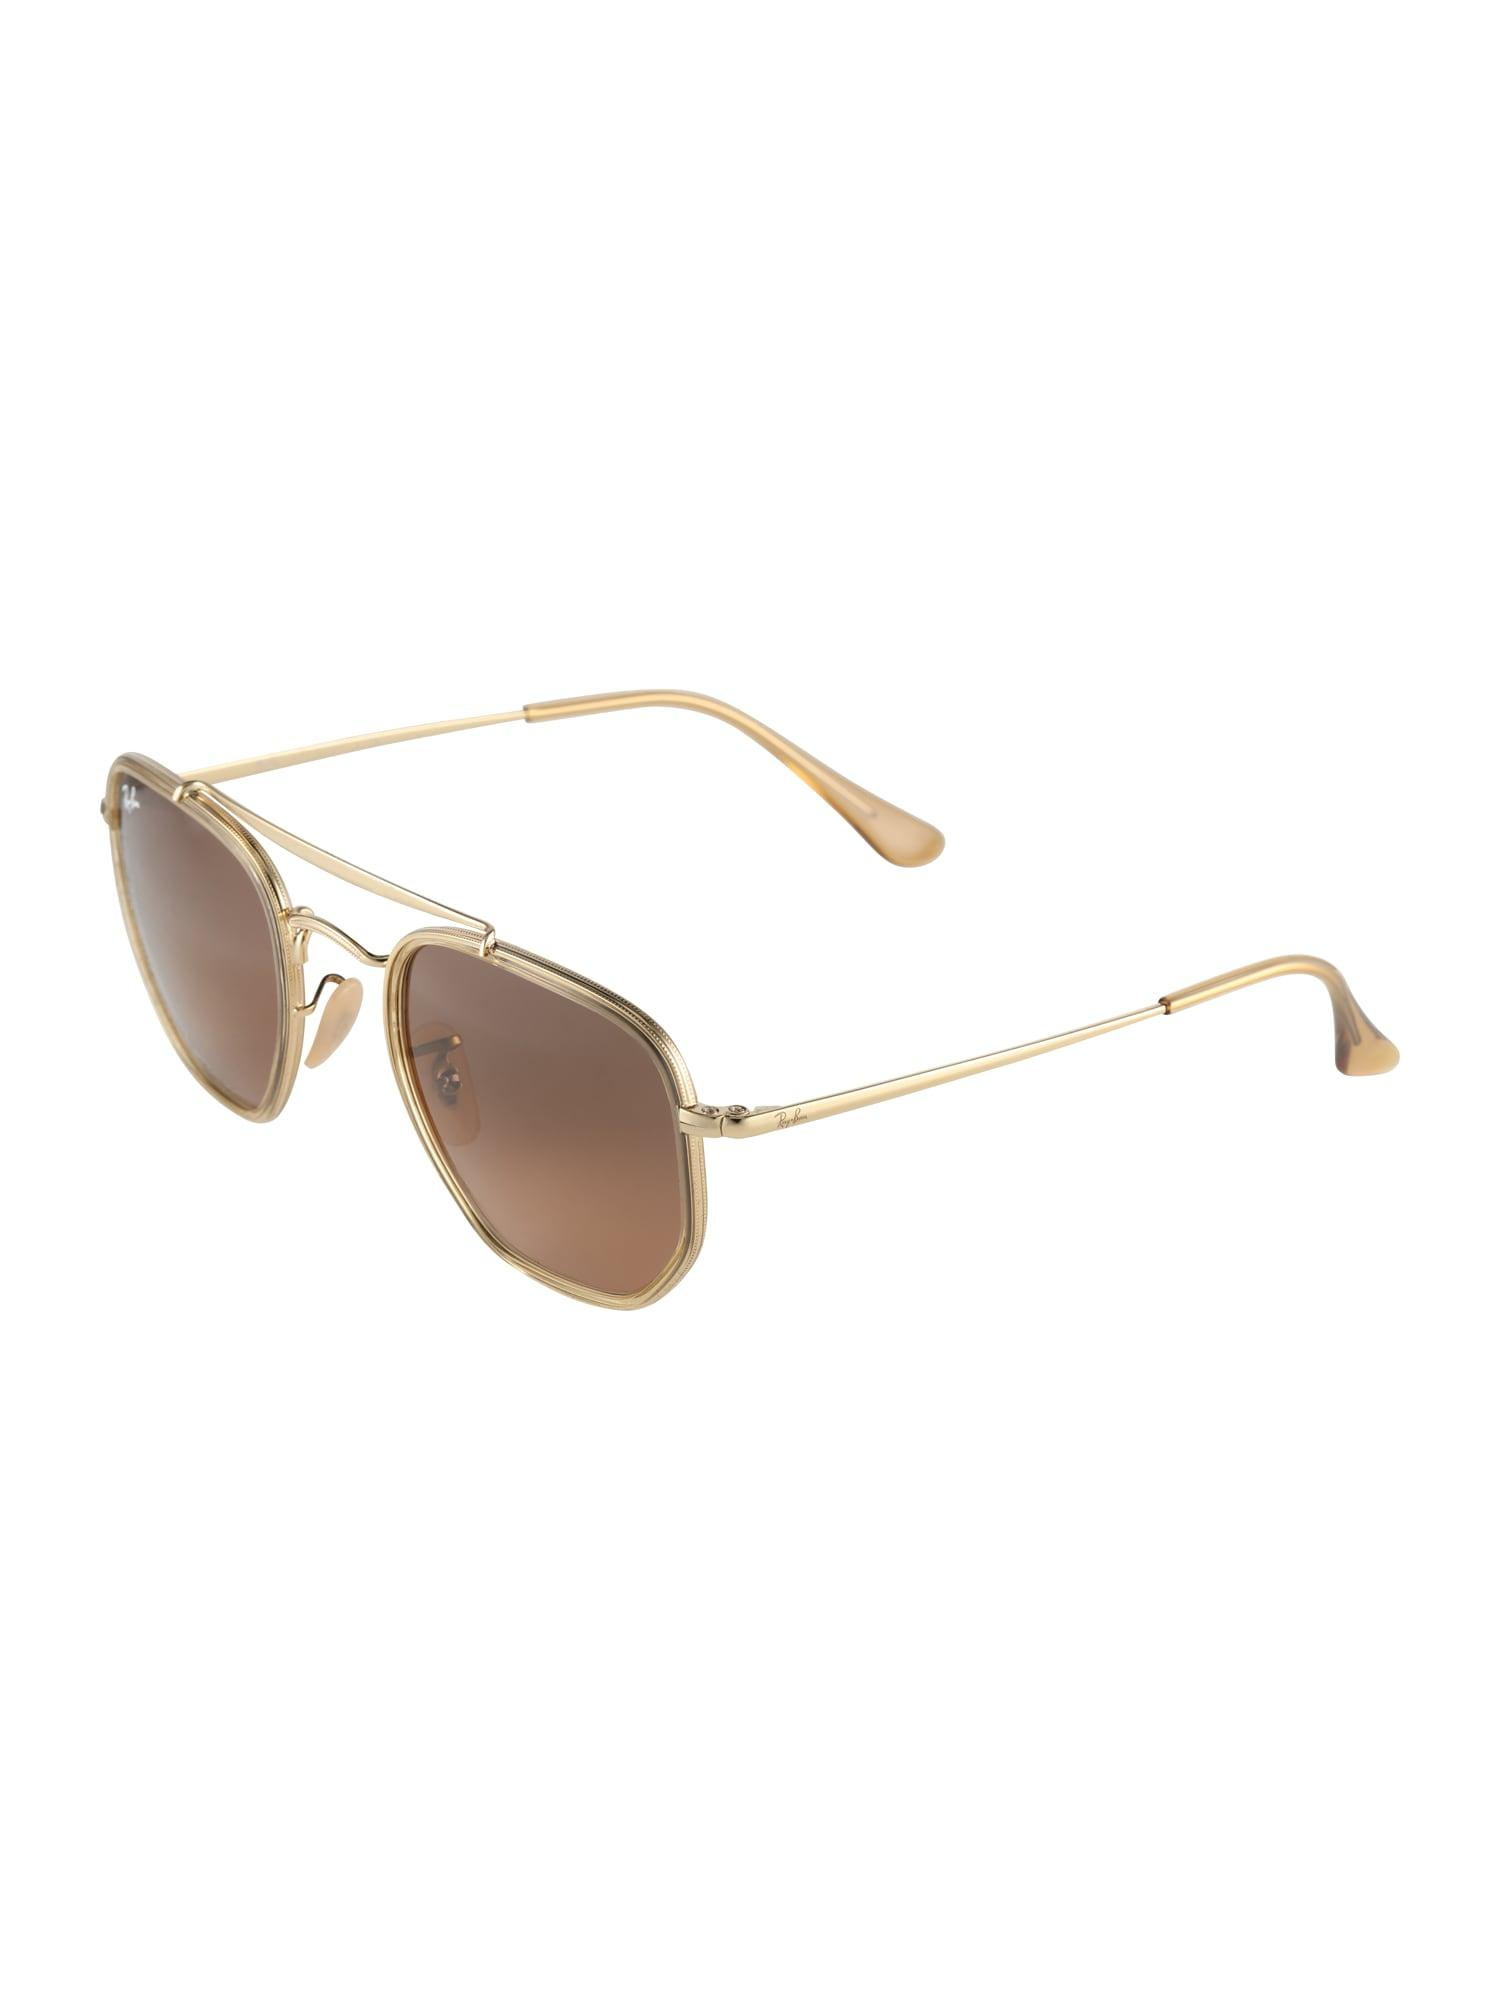 Ray-Ban Sonnenbrille 'THE MARSHAL II' gold